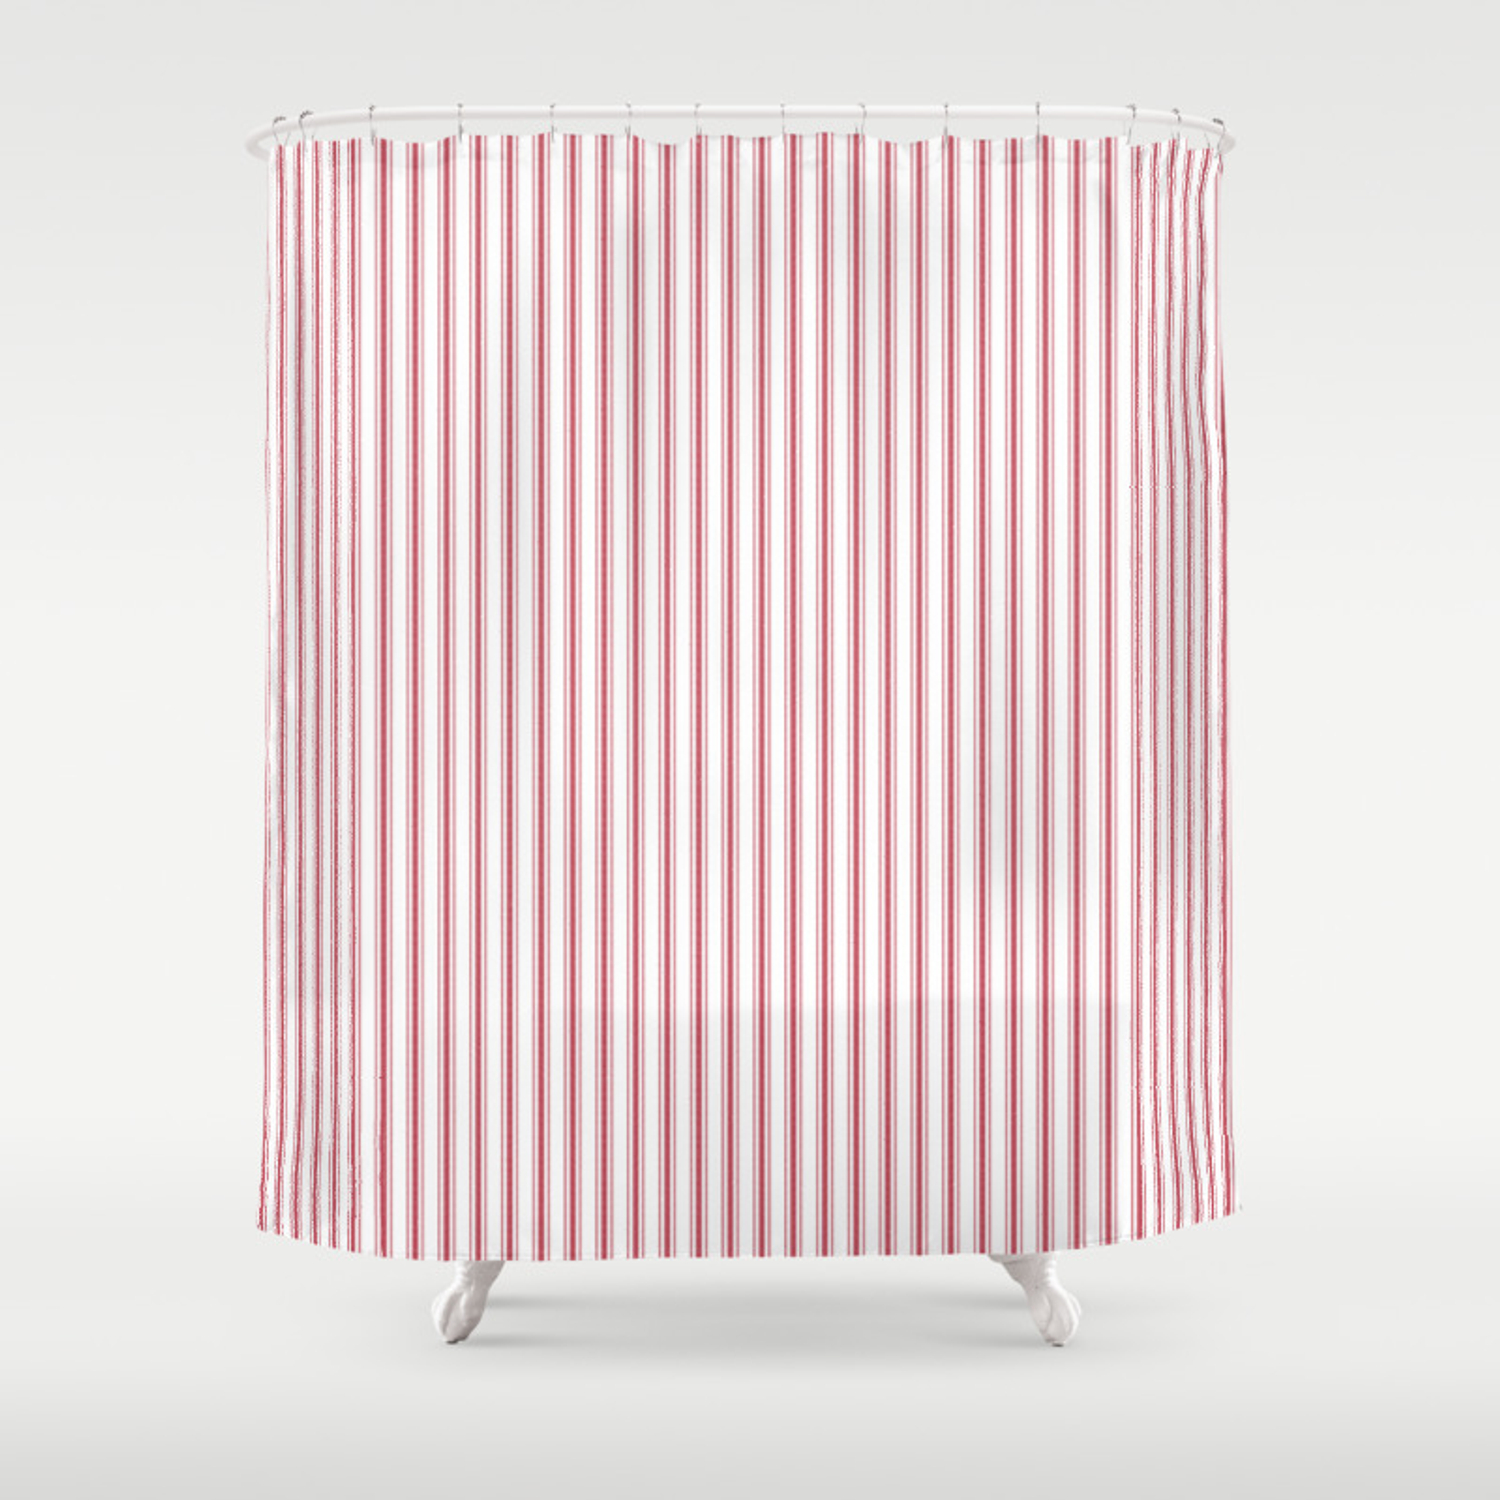 Mattress Ticking Narrow Striped Usa Flag Red And White Shower Curtain